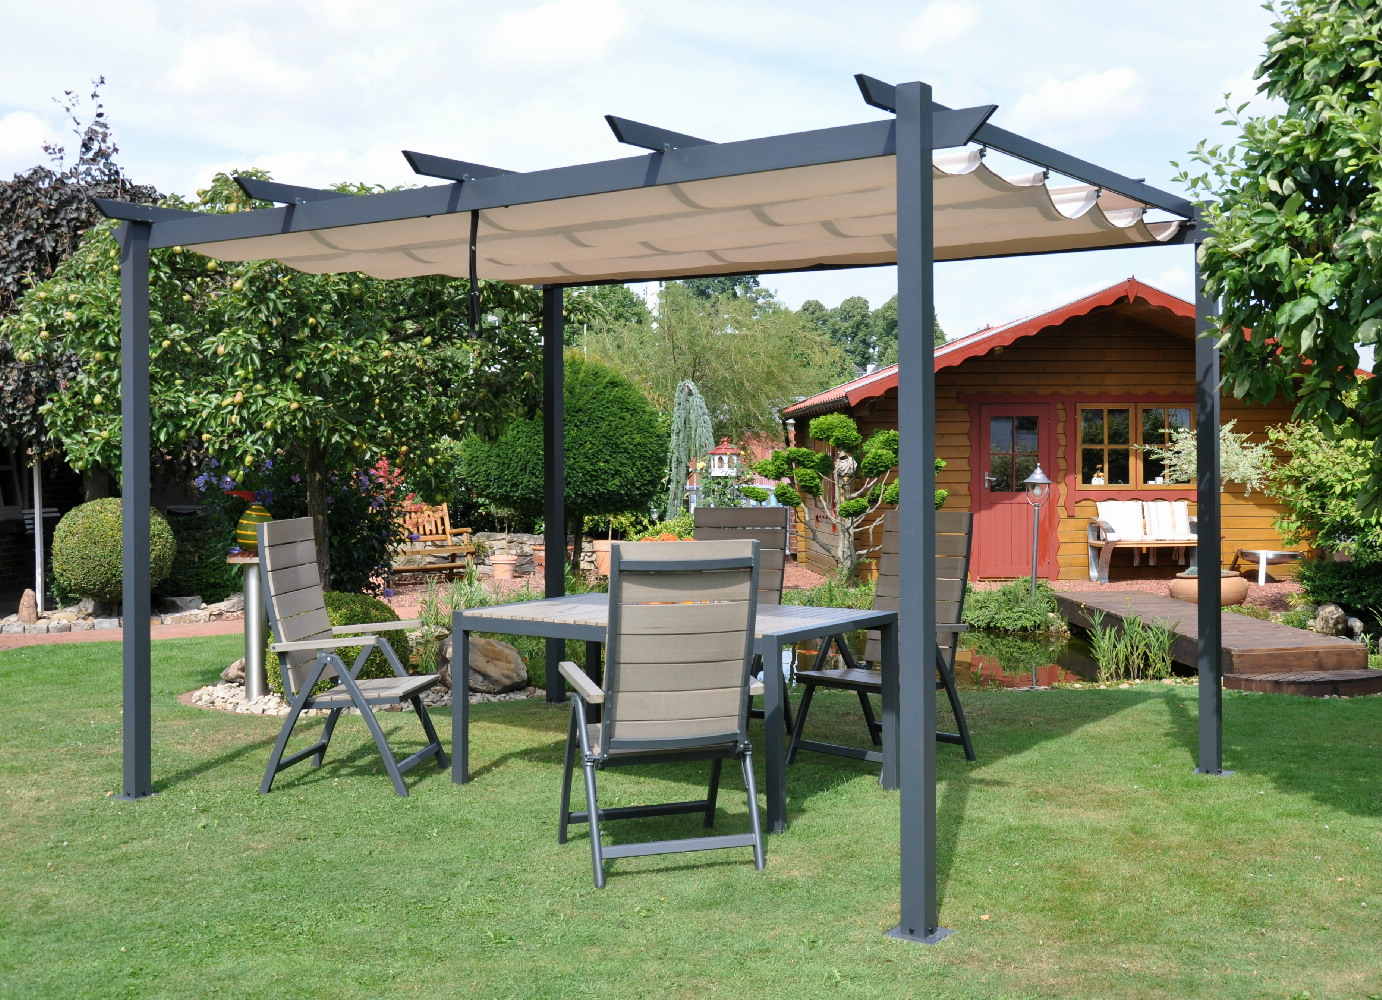 raff pavillon pergola faltdach vario gartenshop. Black Bedroom Furniture Sets. Home Design Ideas